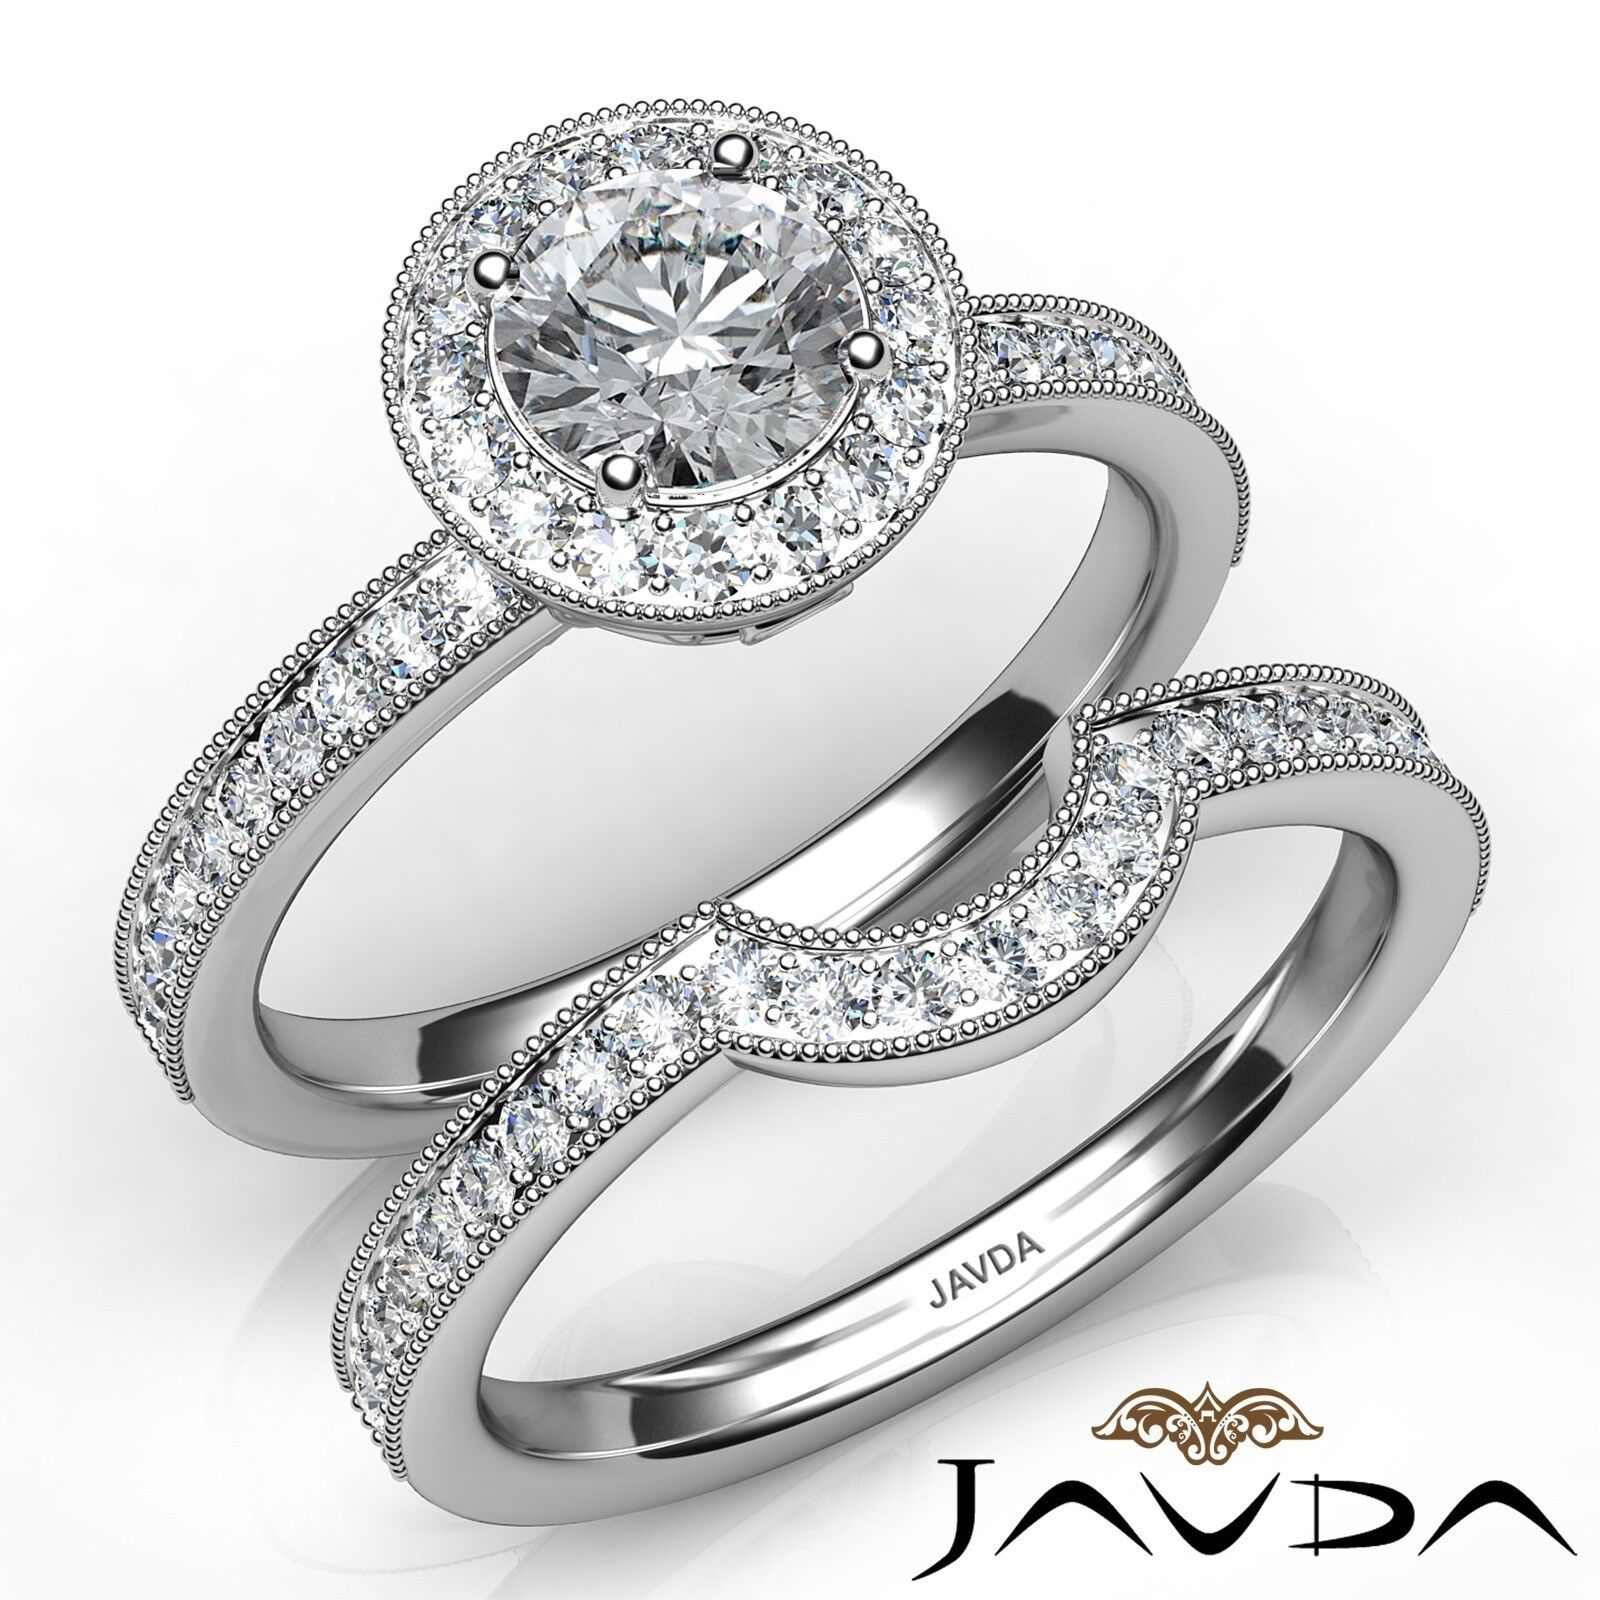 1.71ctw Halo Pave Milgrain Bridal Round Diamond Engagement Ring GIA G-VS2 Gold